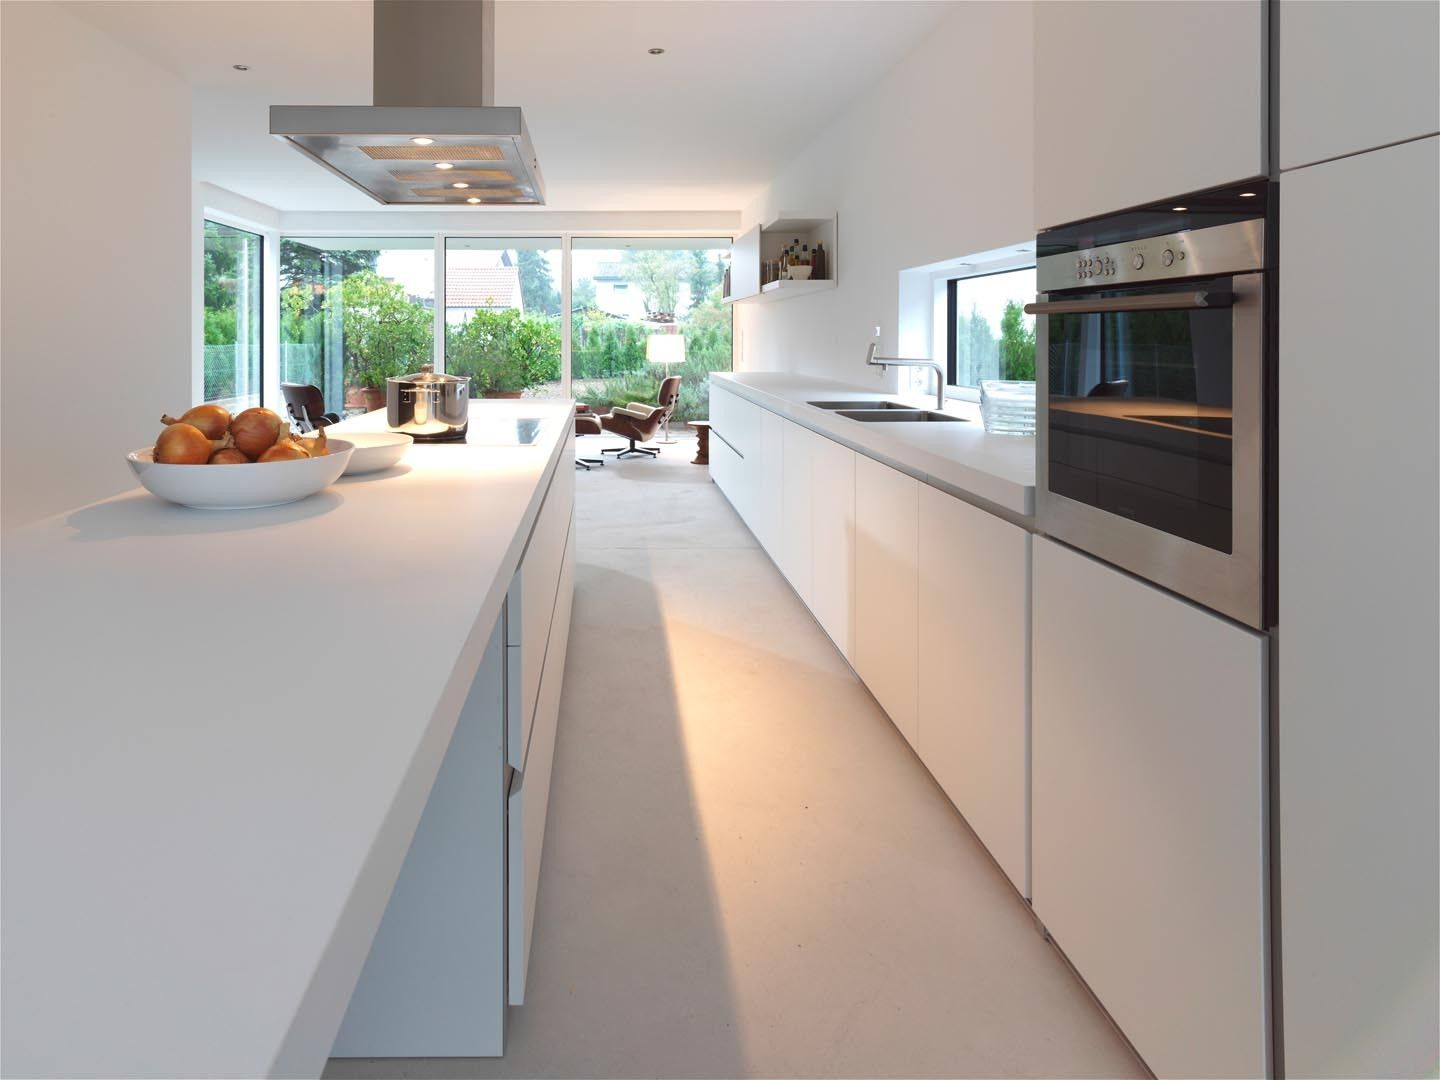 Experience With Bulthaup Kitchens? — Good Questions